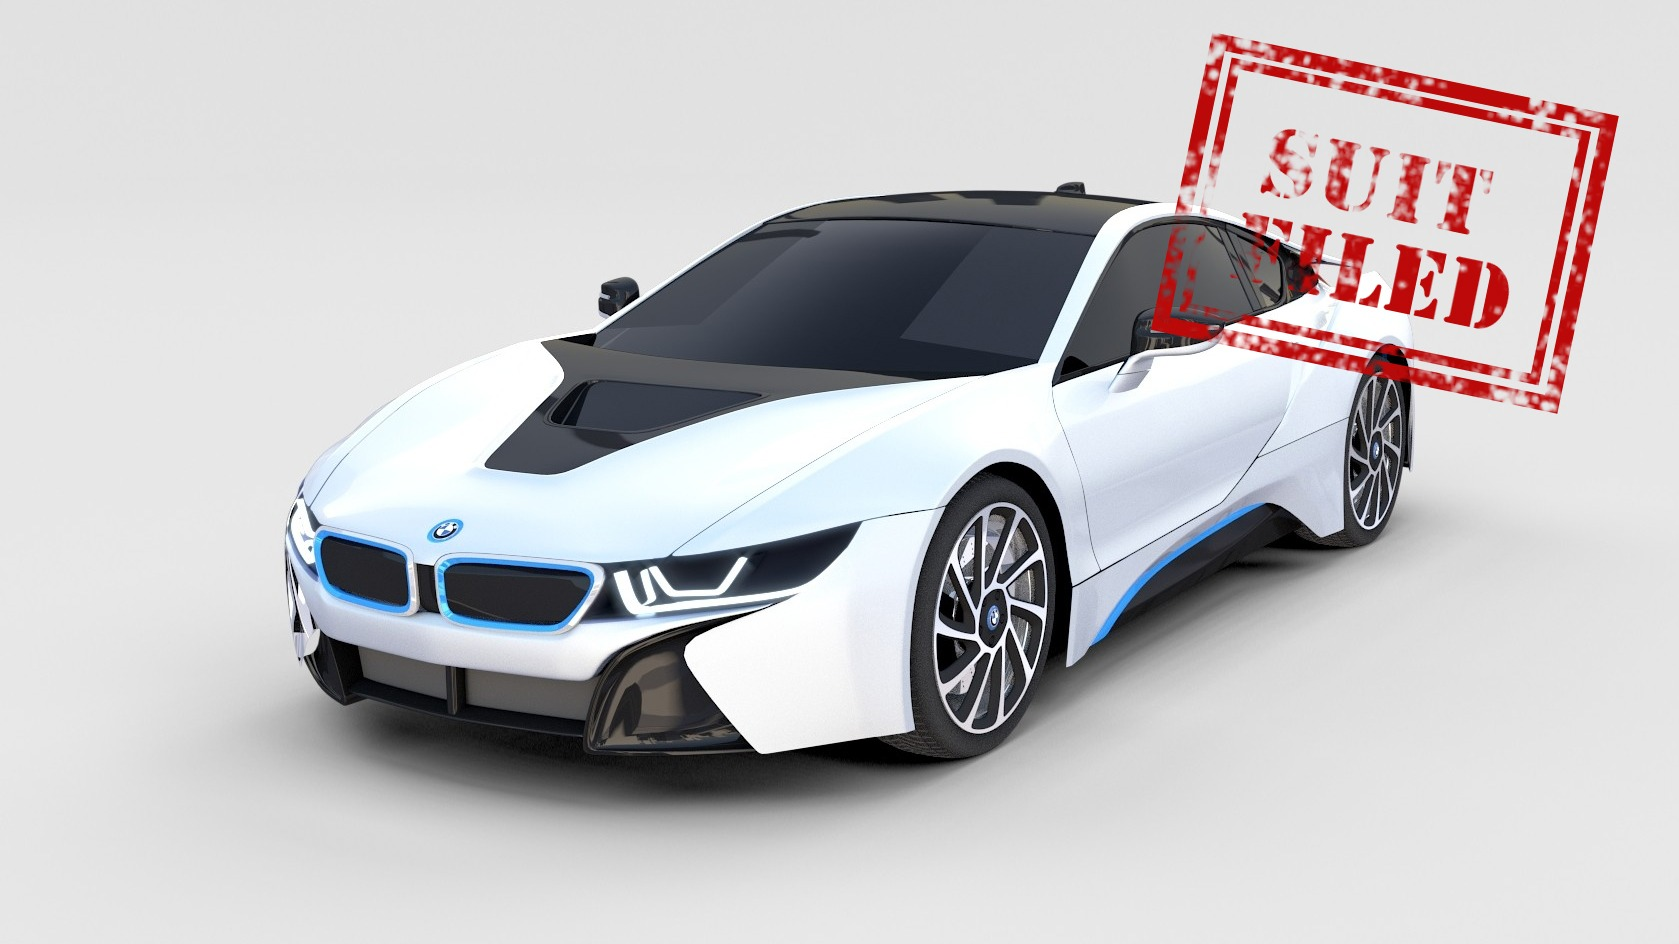 BMW Group Sues Turbosquid for Selling 3D Models of Their Car Designs